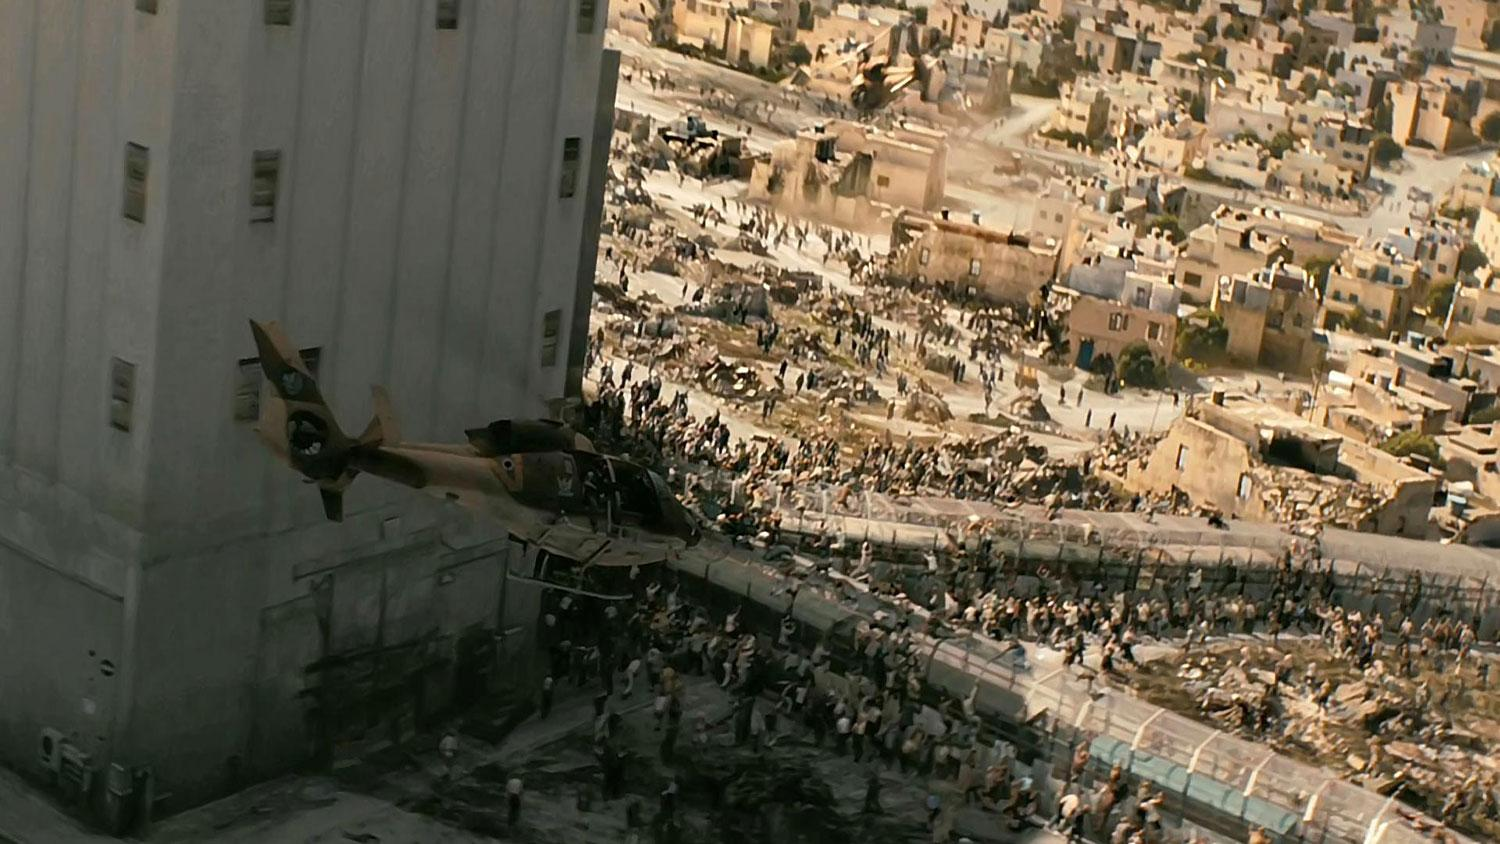 helicopter israel with World War Z on Pictures 10 as well 03 as well 0 7340 L 4802294 00 together with Pictures 10 as well World War Z.